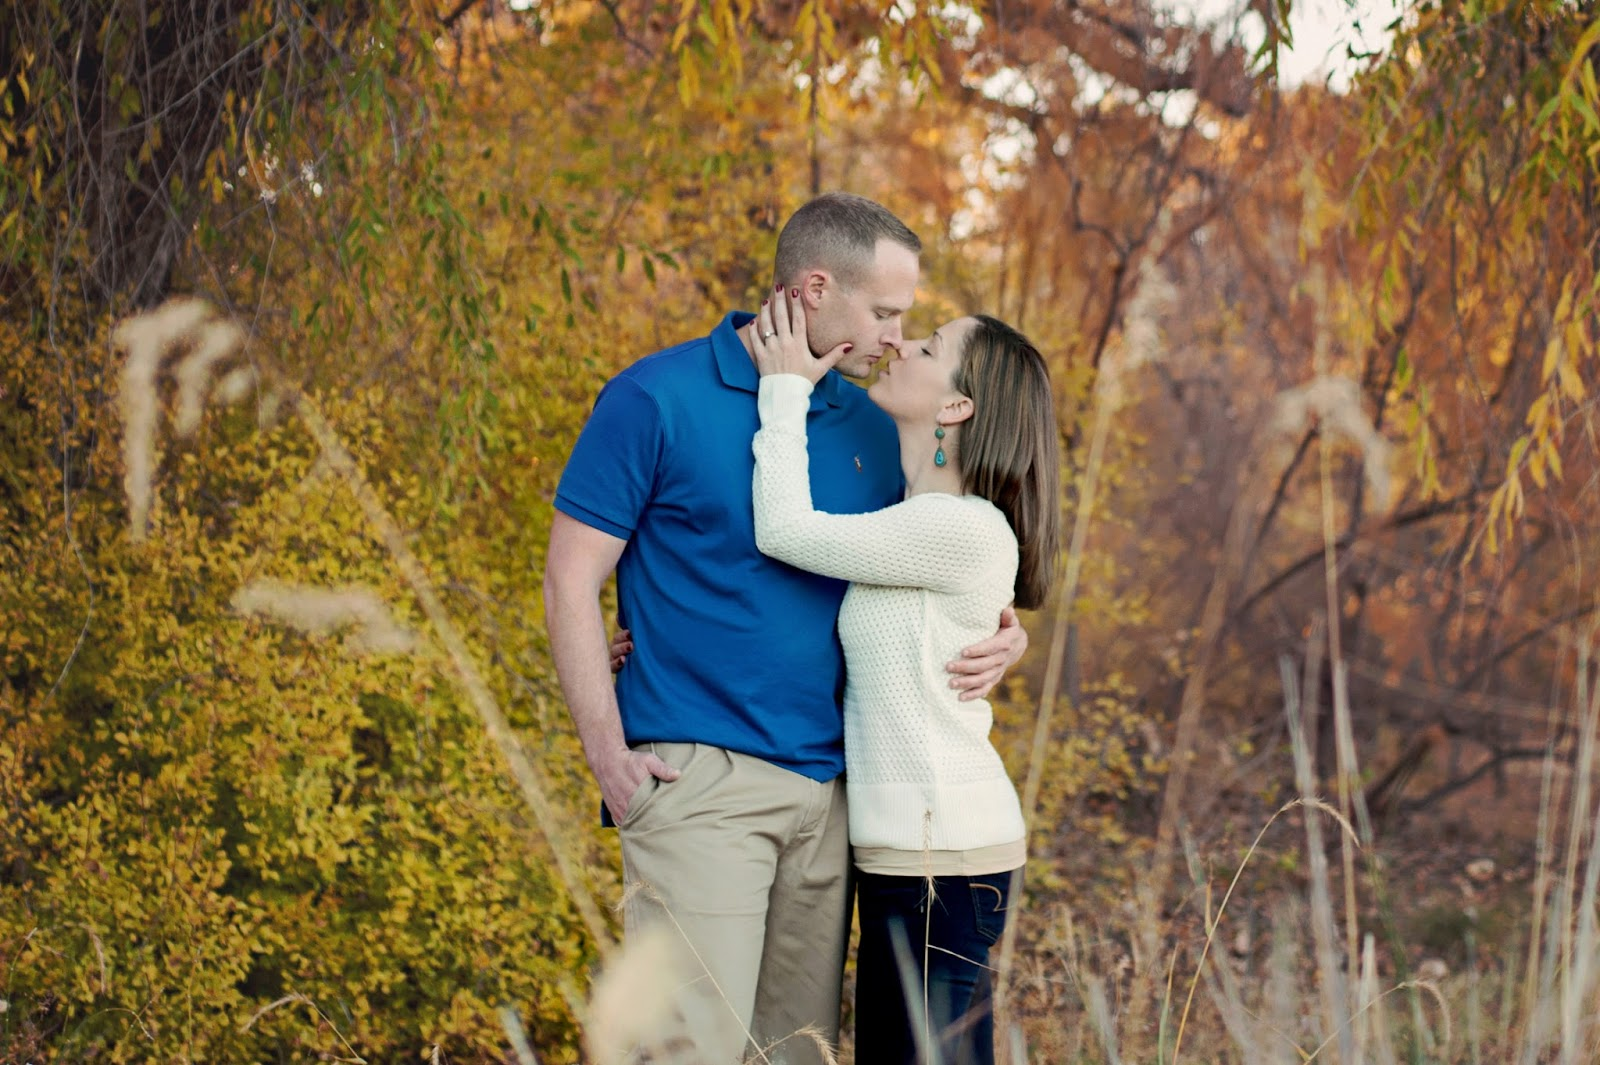 fall engagement, fall engagement pictures, engagement pictures, engagement session, albuquerque wedding photographer, new mexico wedding photographer, wedding photographers in albuquerque, photographers in new mexico, wedding photographers in santa fe